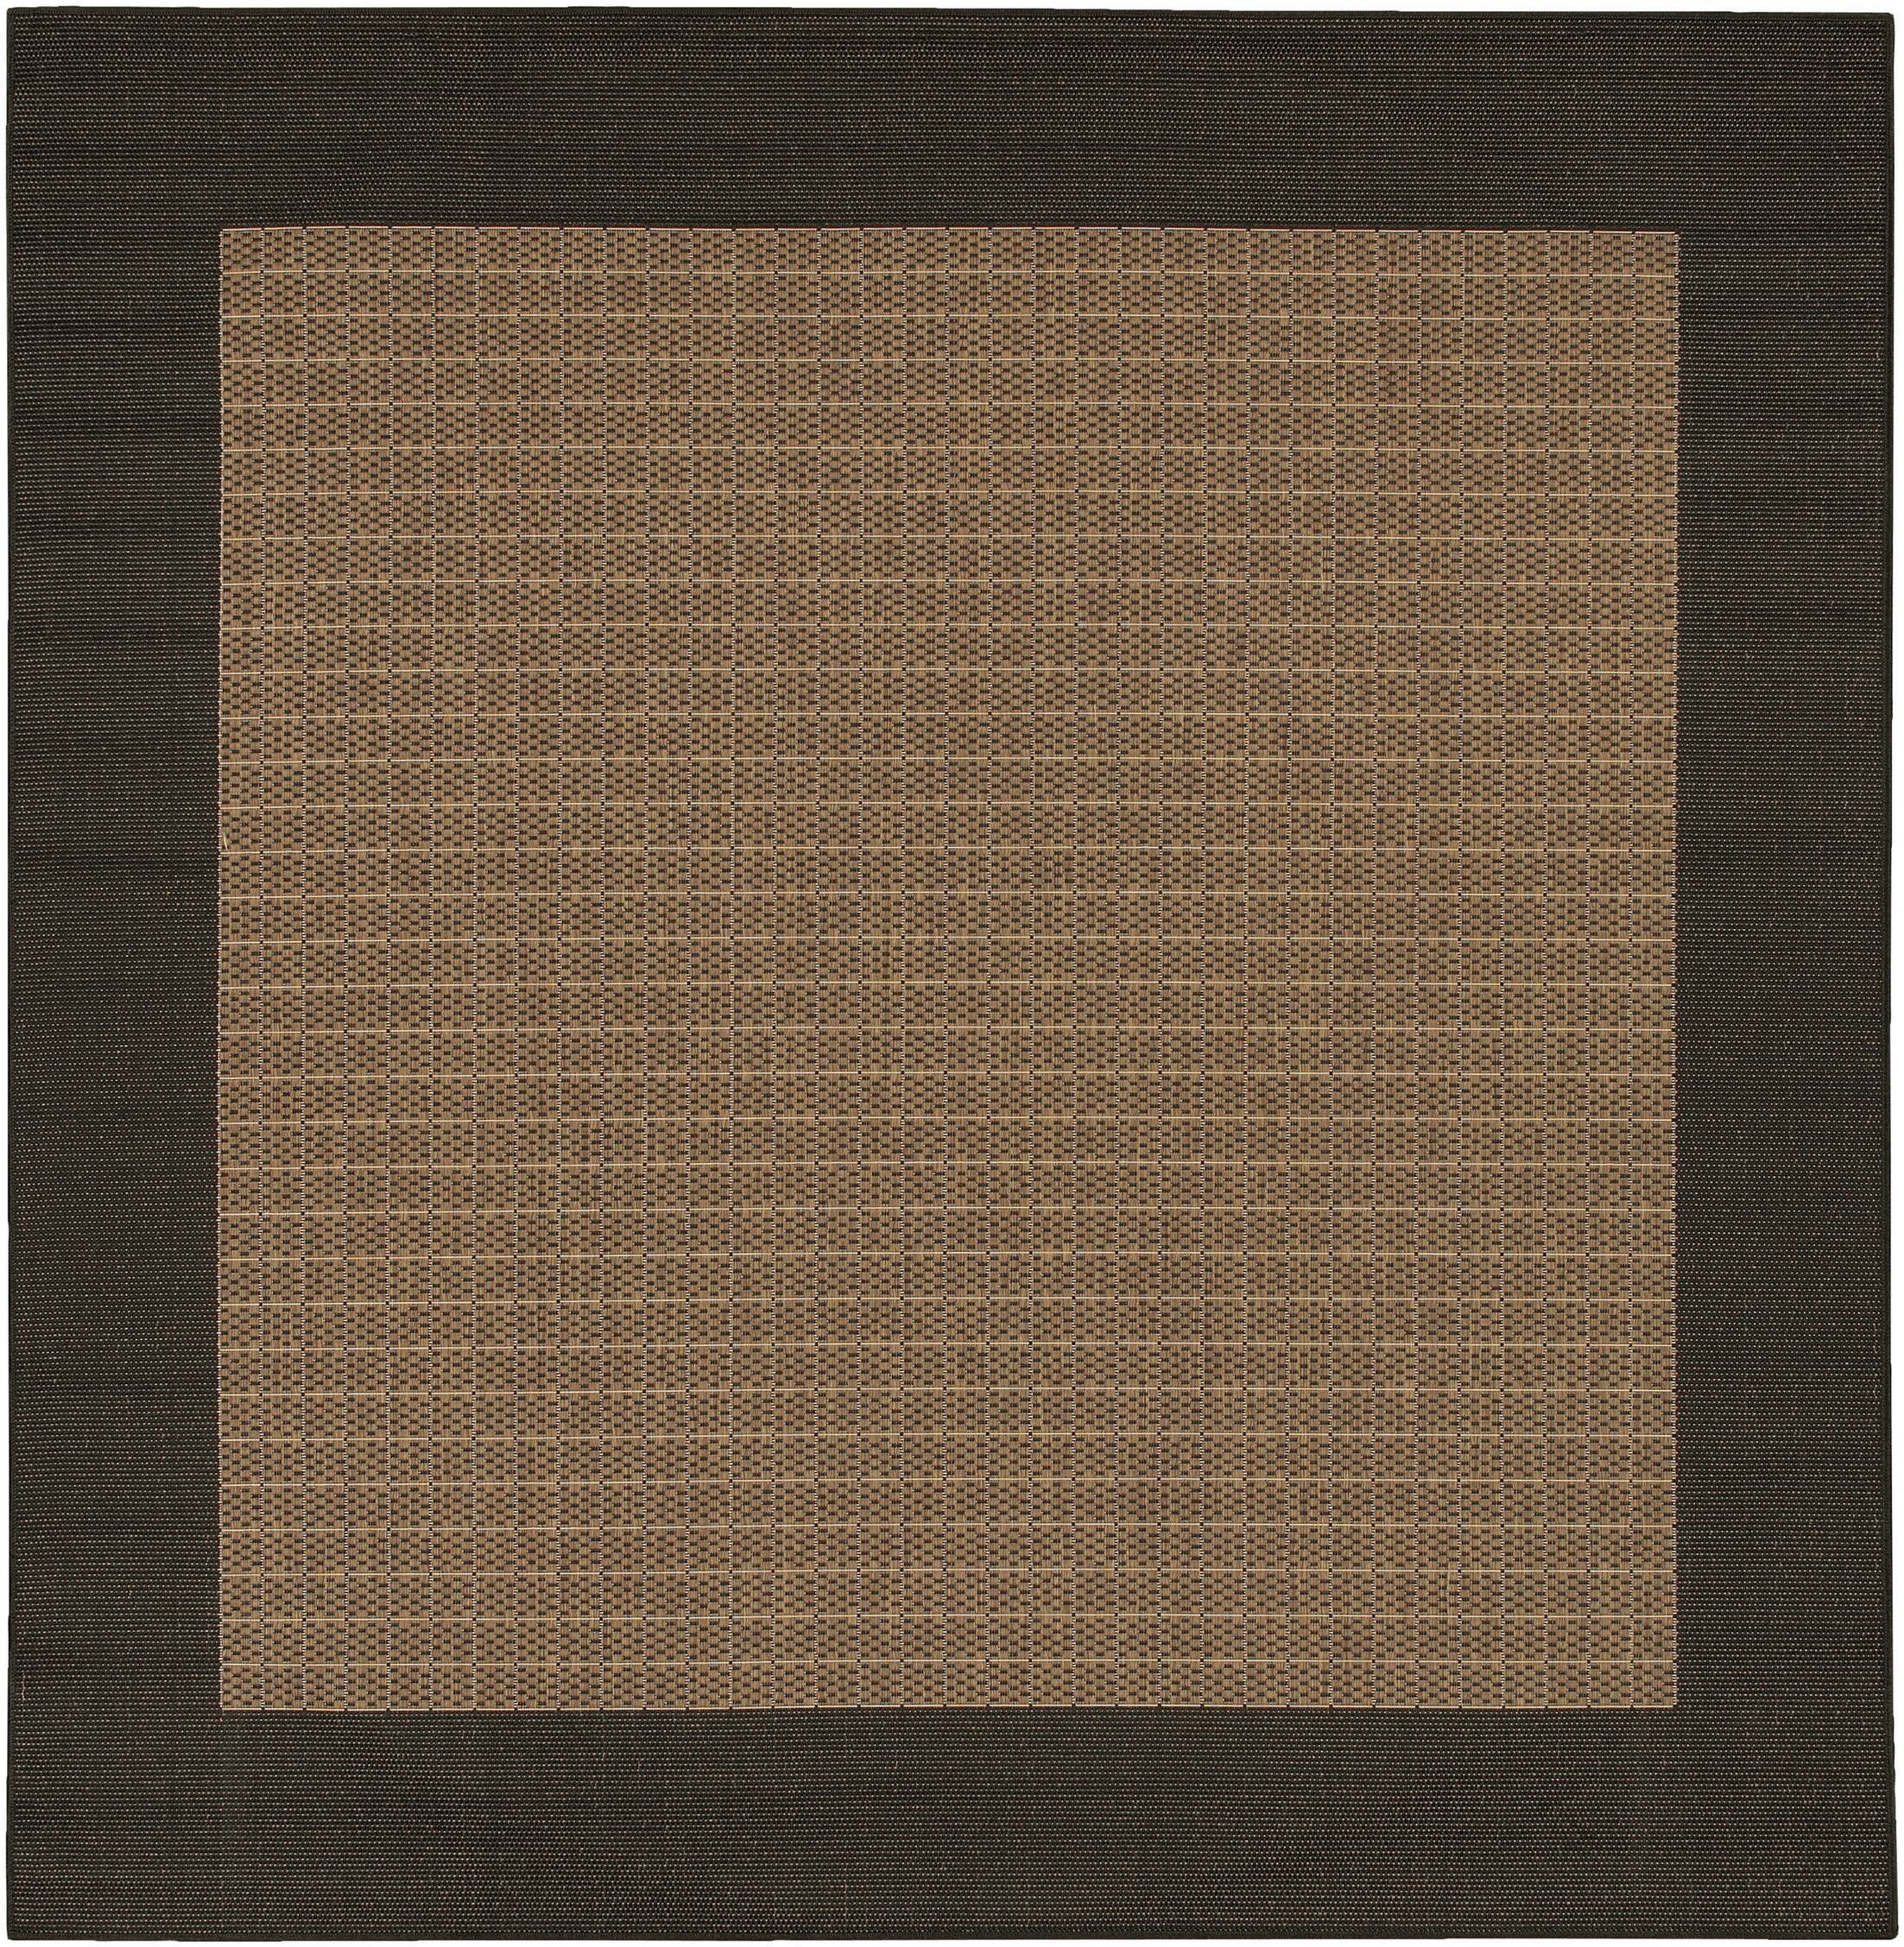 Halsey Checkered Field Cocoa/Black Indoor/Outdoor Area Rug Rug Size: Square 8'6